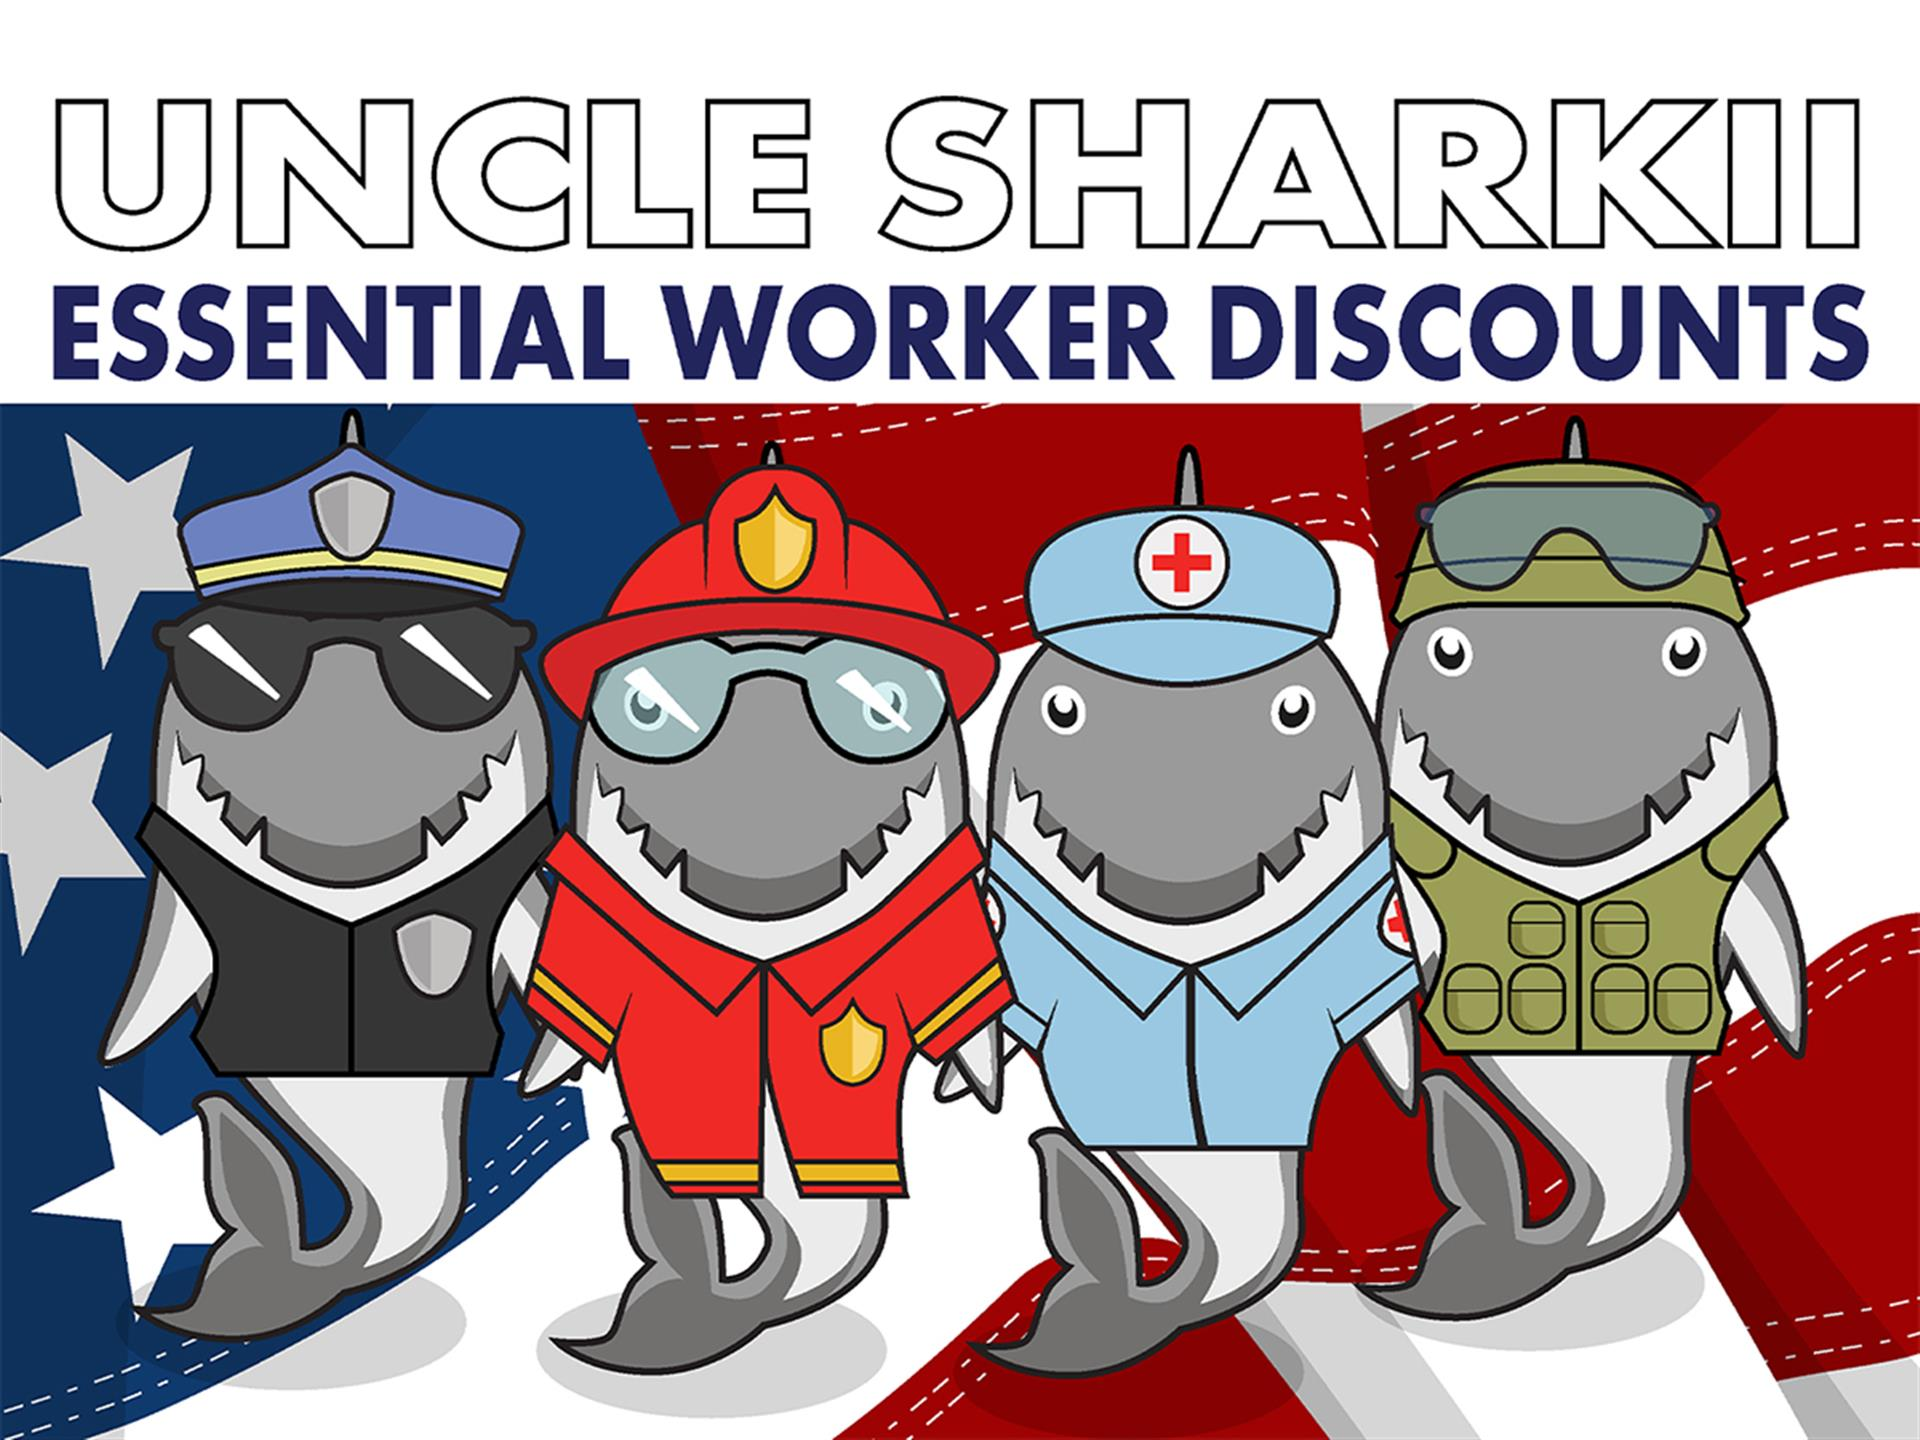 Graphic of Essential Worker sharks saying Uncle Sharkii Essential Worker Discounts